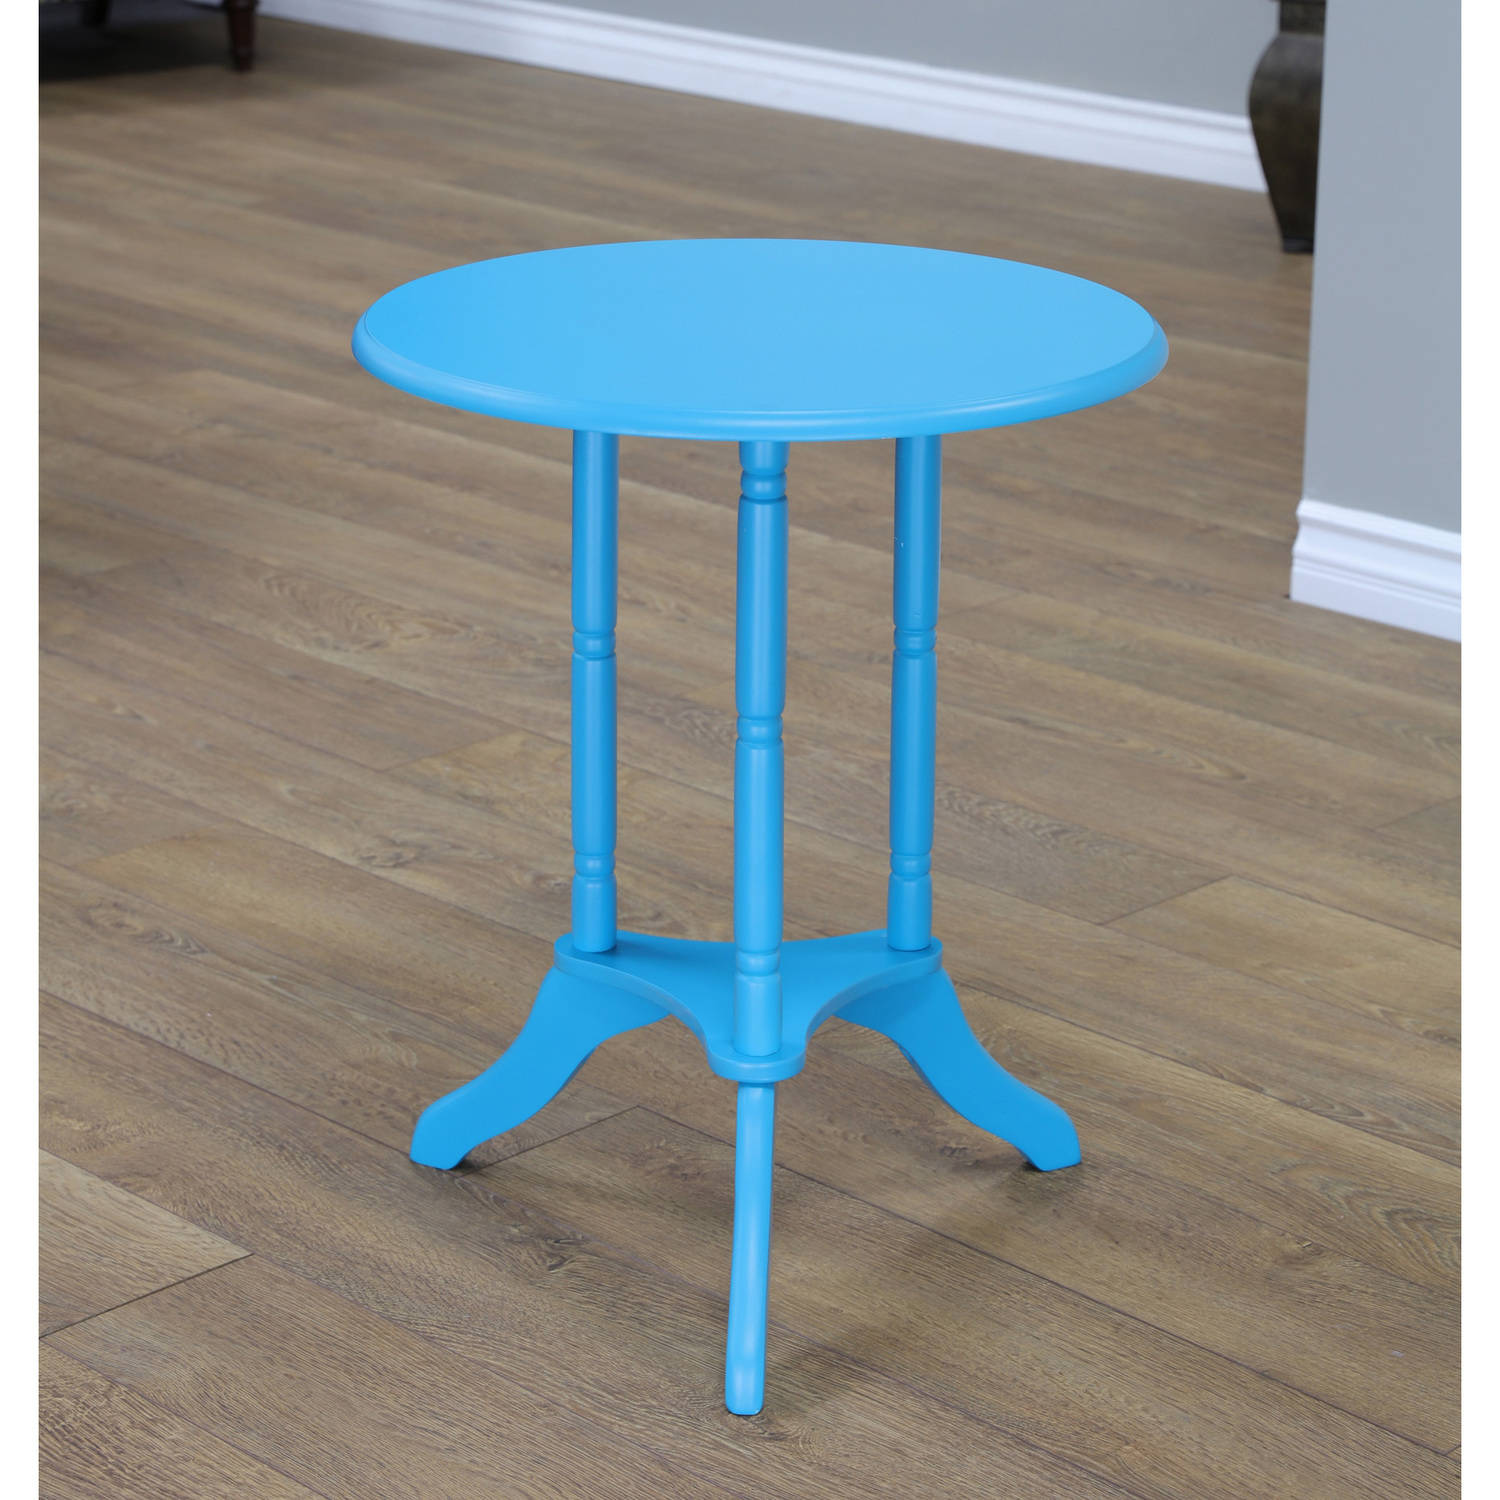 Home Craft Round End Table, Multiple Colors by Mega Home